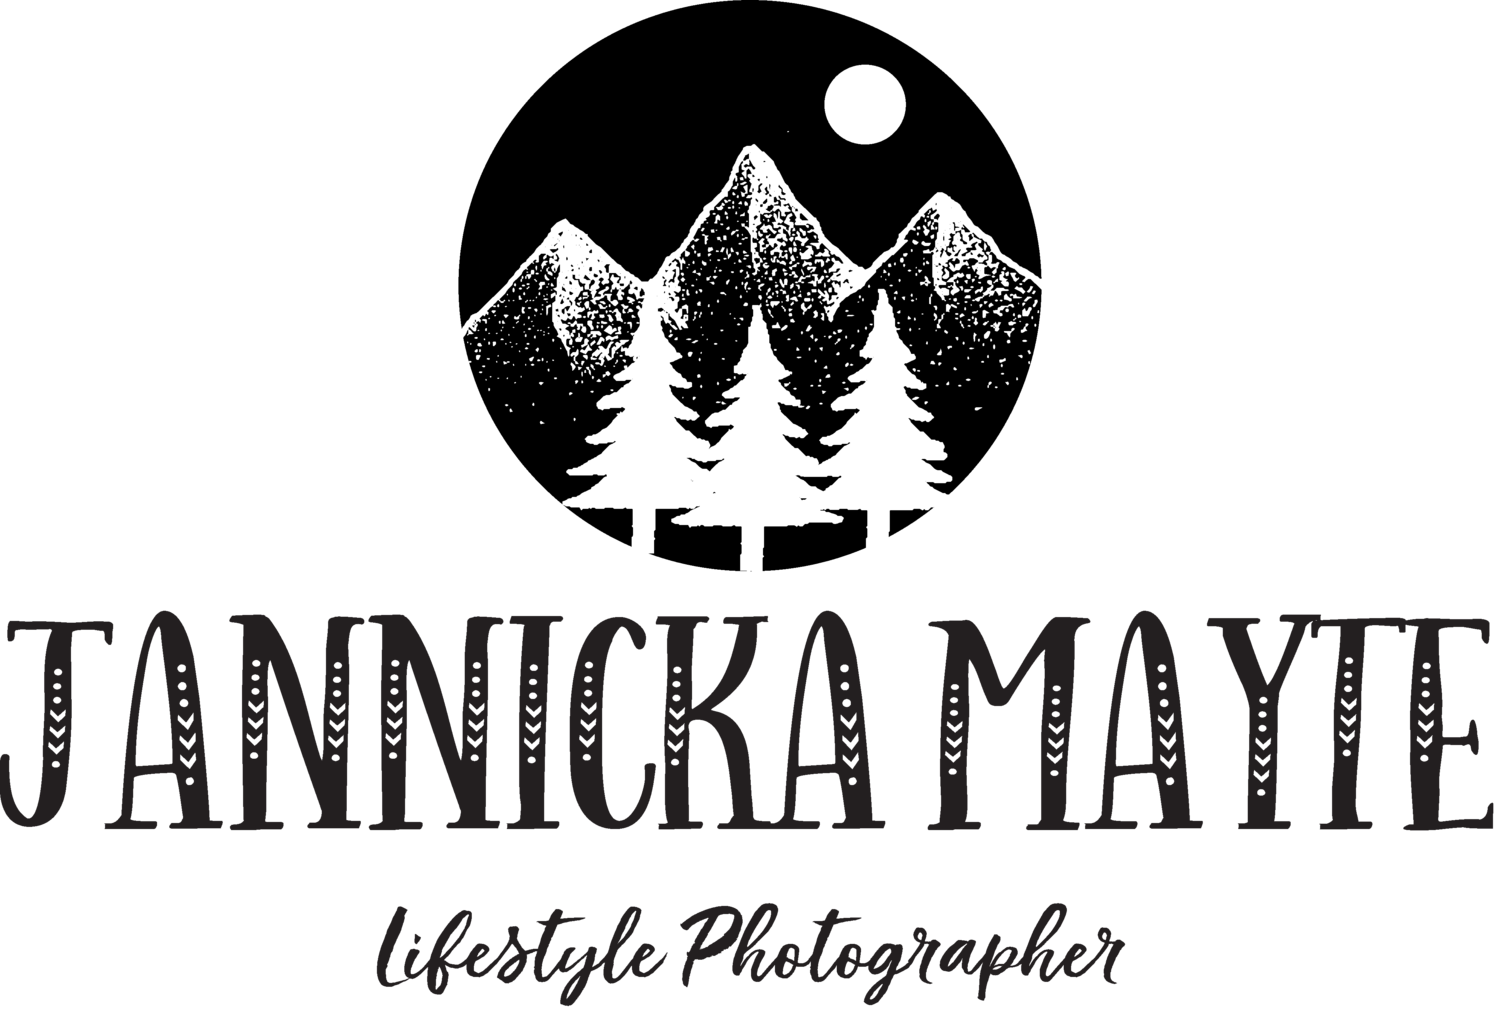 Jannicka Mayte | Anchorage Lifestyle Photographer